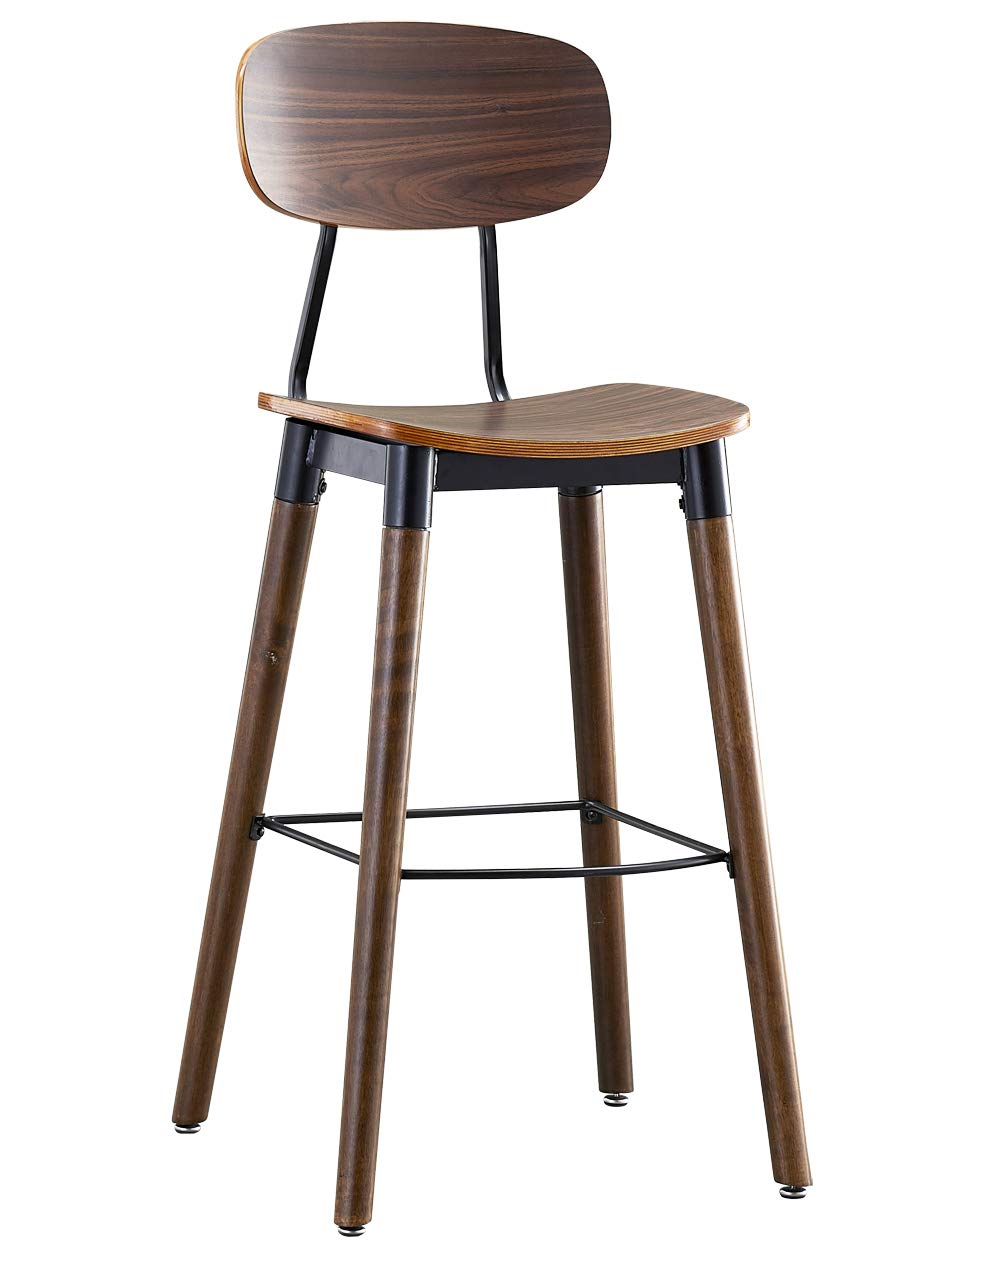 Amazon Com Ok Furniture 30 Inch Pub Bar Height Barstool Modern Industrial Dining Bar Stool Chairs With Wood Seat And Backrest Rustic Brown Finish 1